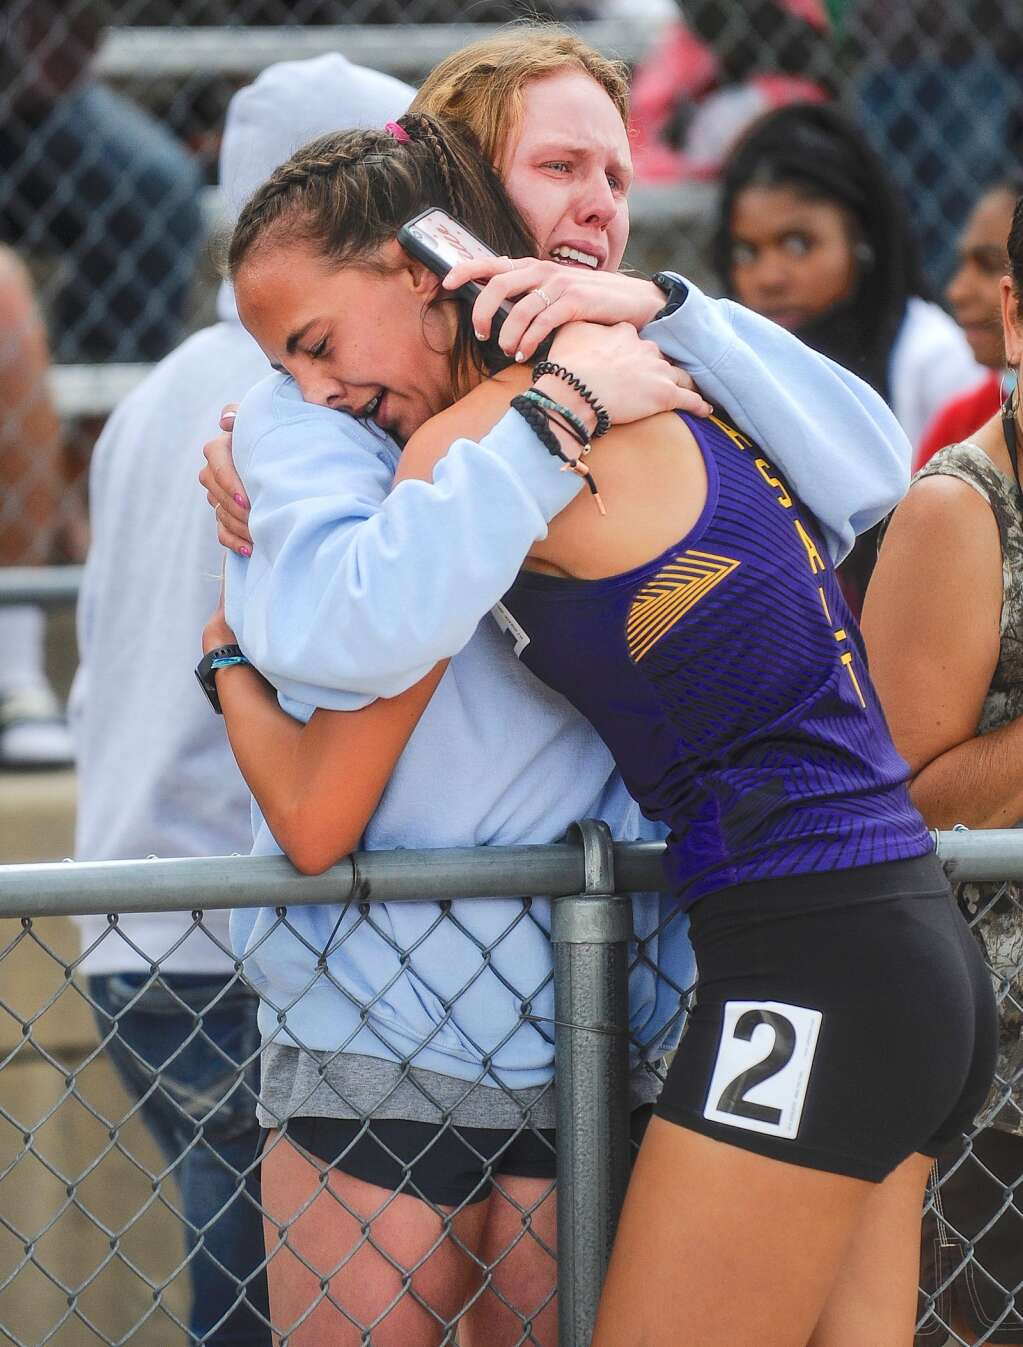 Basalt High School sophomore Katelyn Maley, right, hugs her sister, BHS graduate Megan Maley, after she won the Class 3A girls' 1,600-meter race at the state track and field championships on Saturday, June 26, 2021, at Jefferson County Stadium in Lakewood. Photo by Shelby Reardon/Steamboat Pilot & Today.